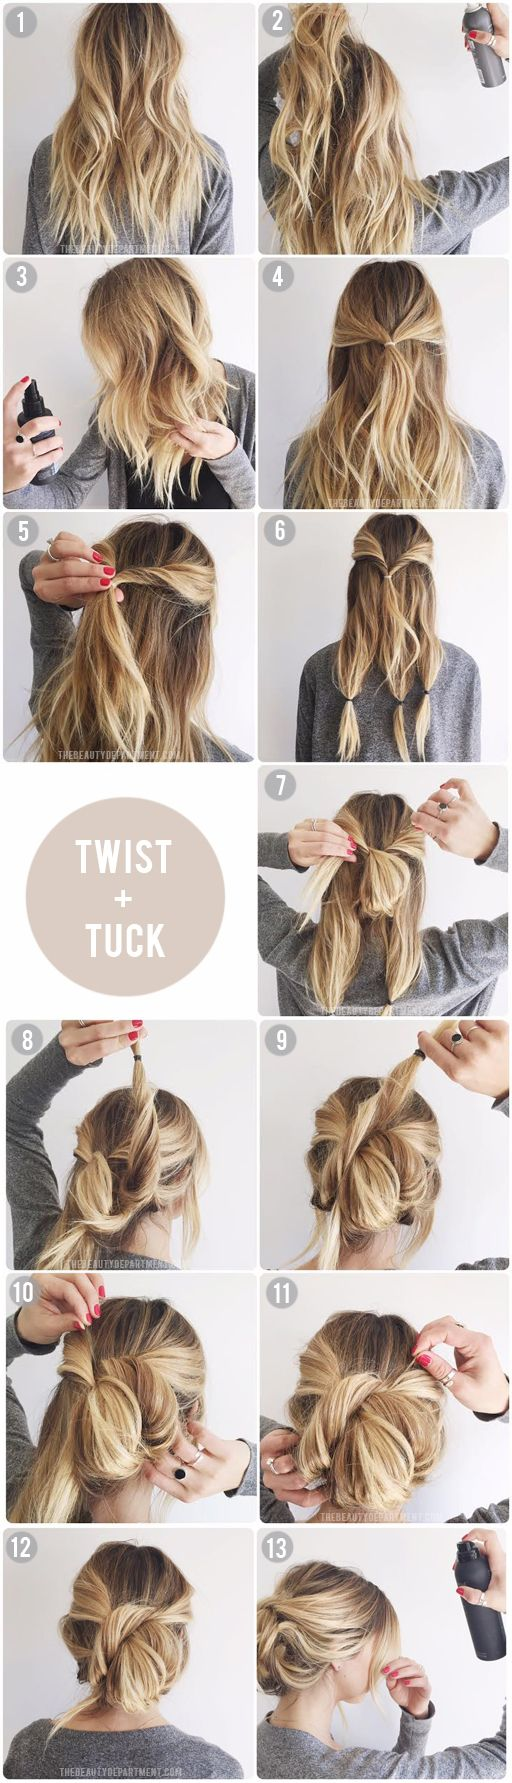 Easiest updo ever u messy boho chic hairstyles u pinterest